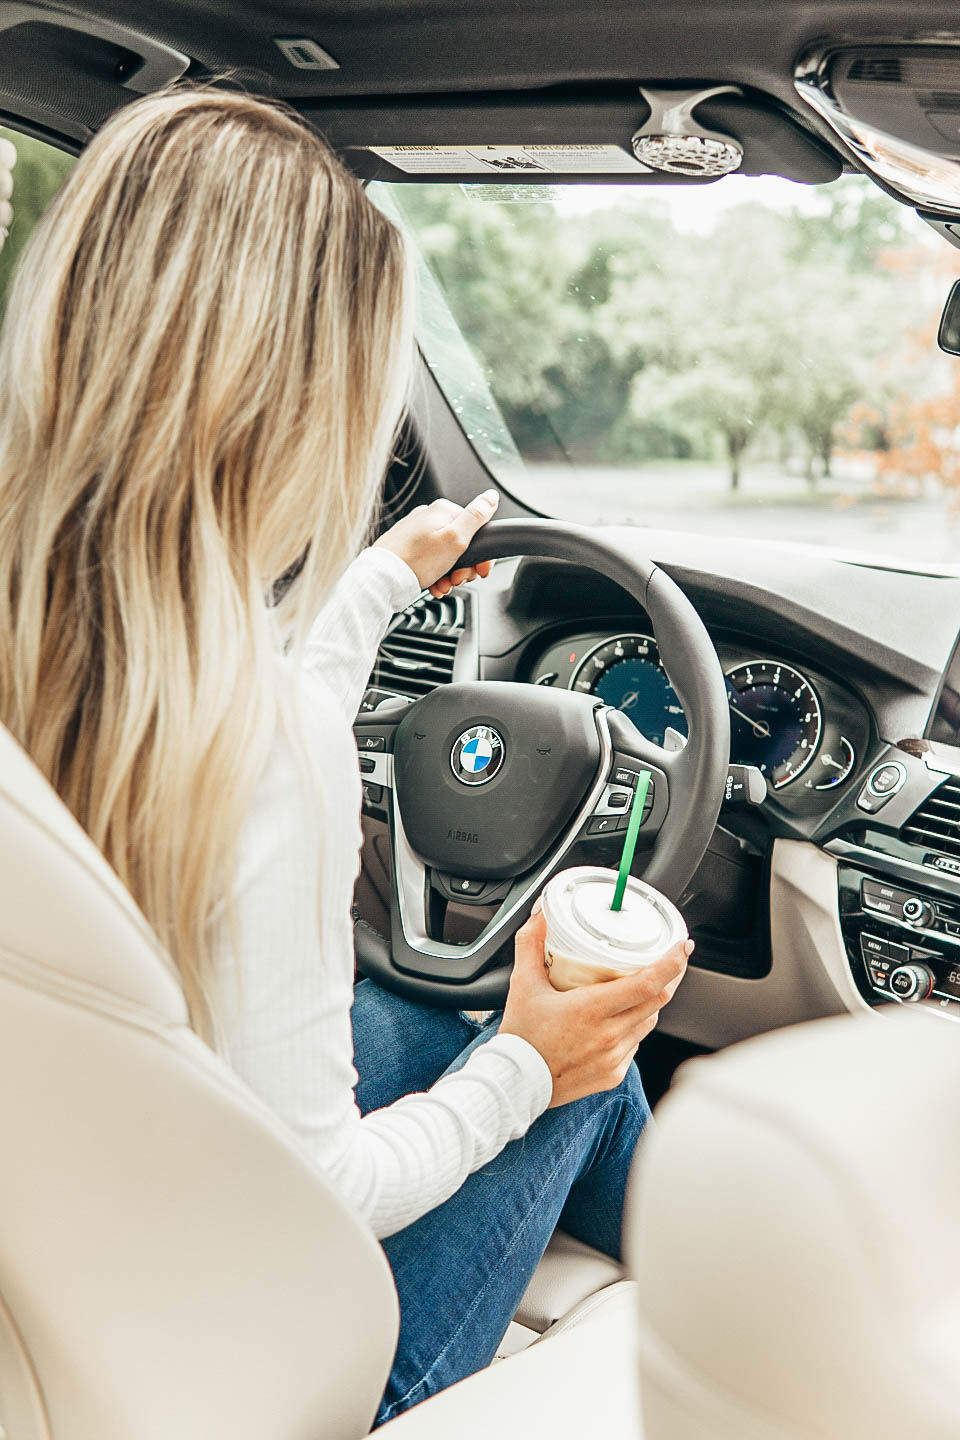 2019 bmw x3 car review (1 of 1)-2.jpg